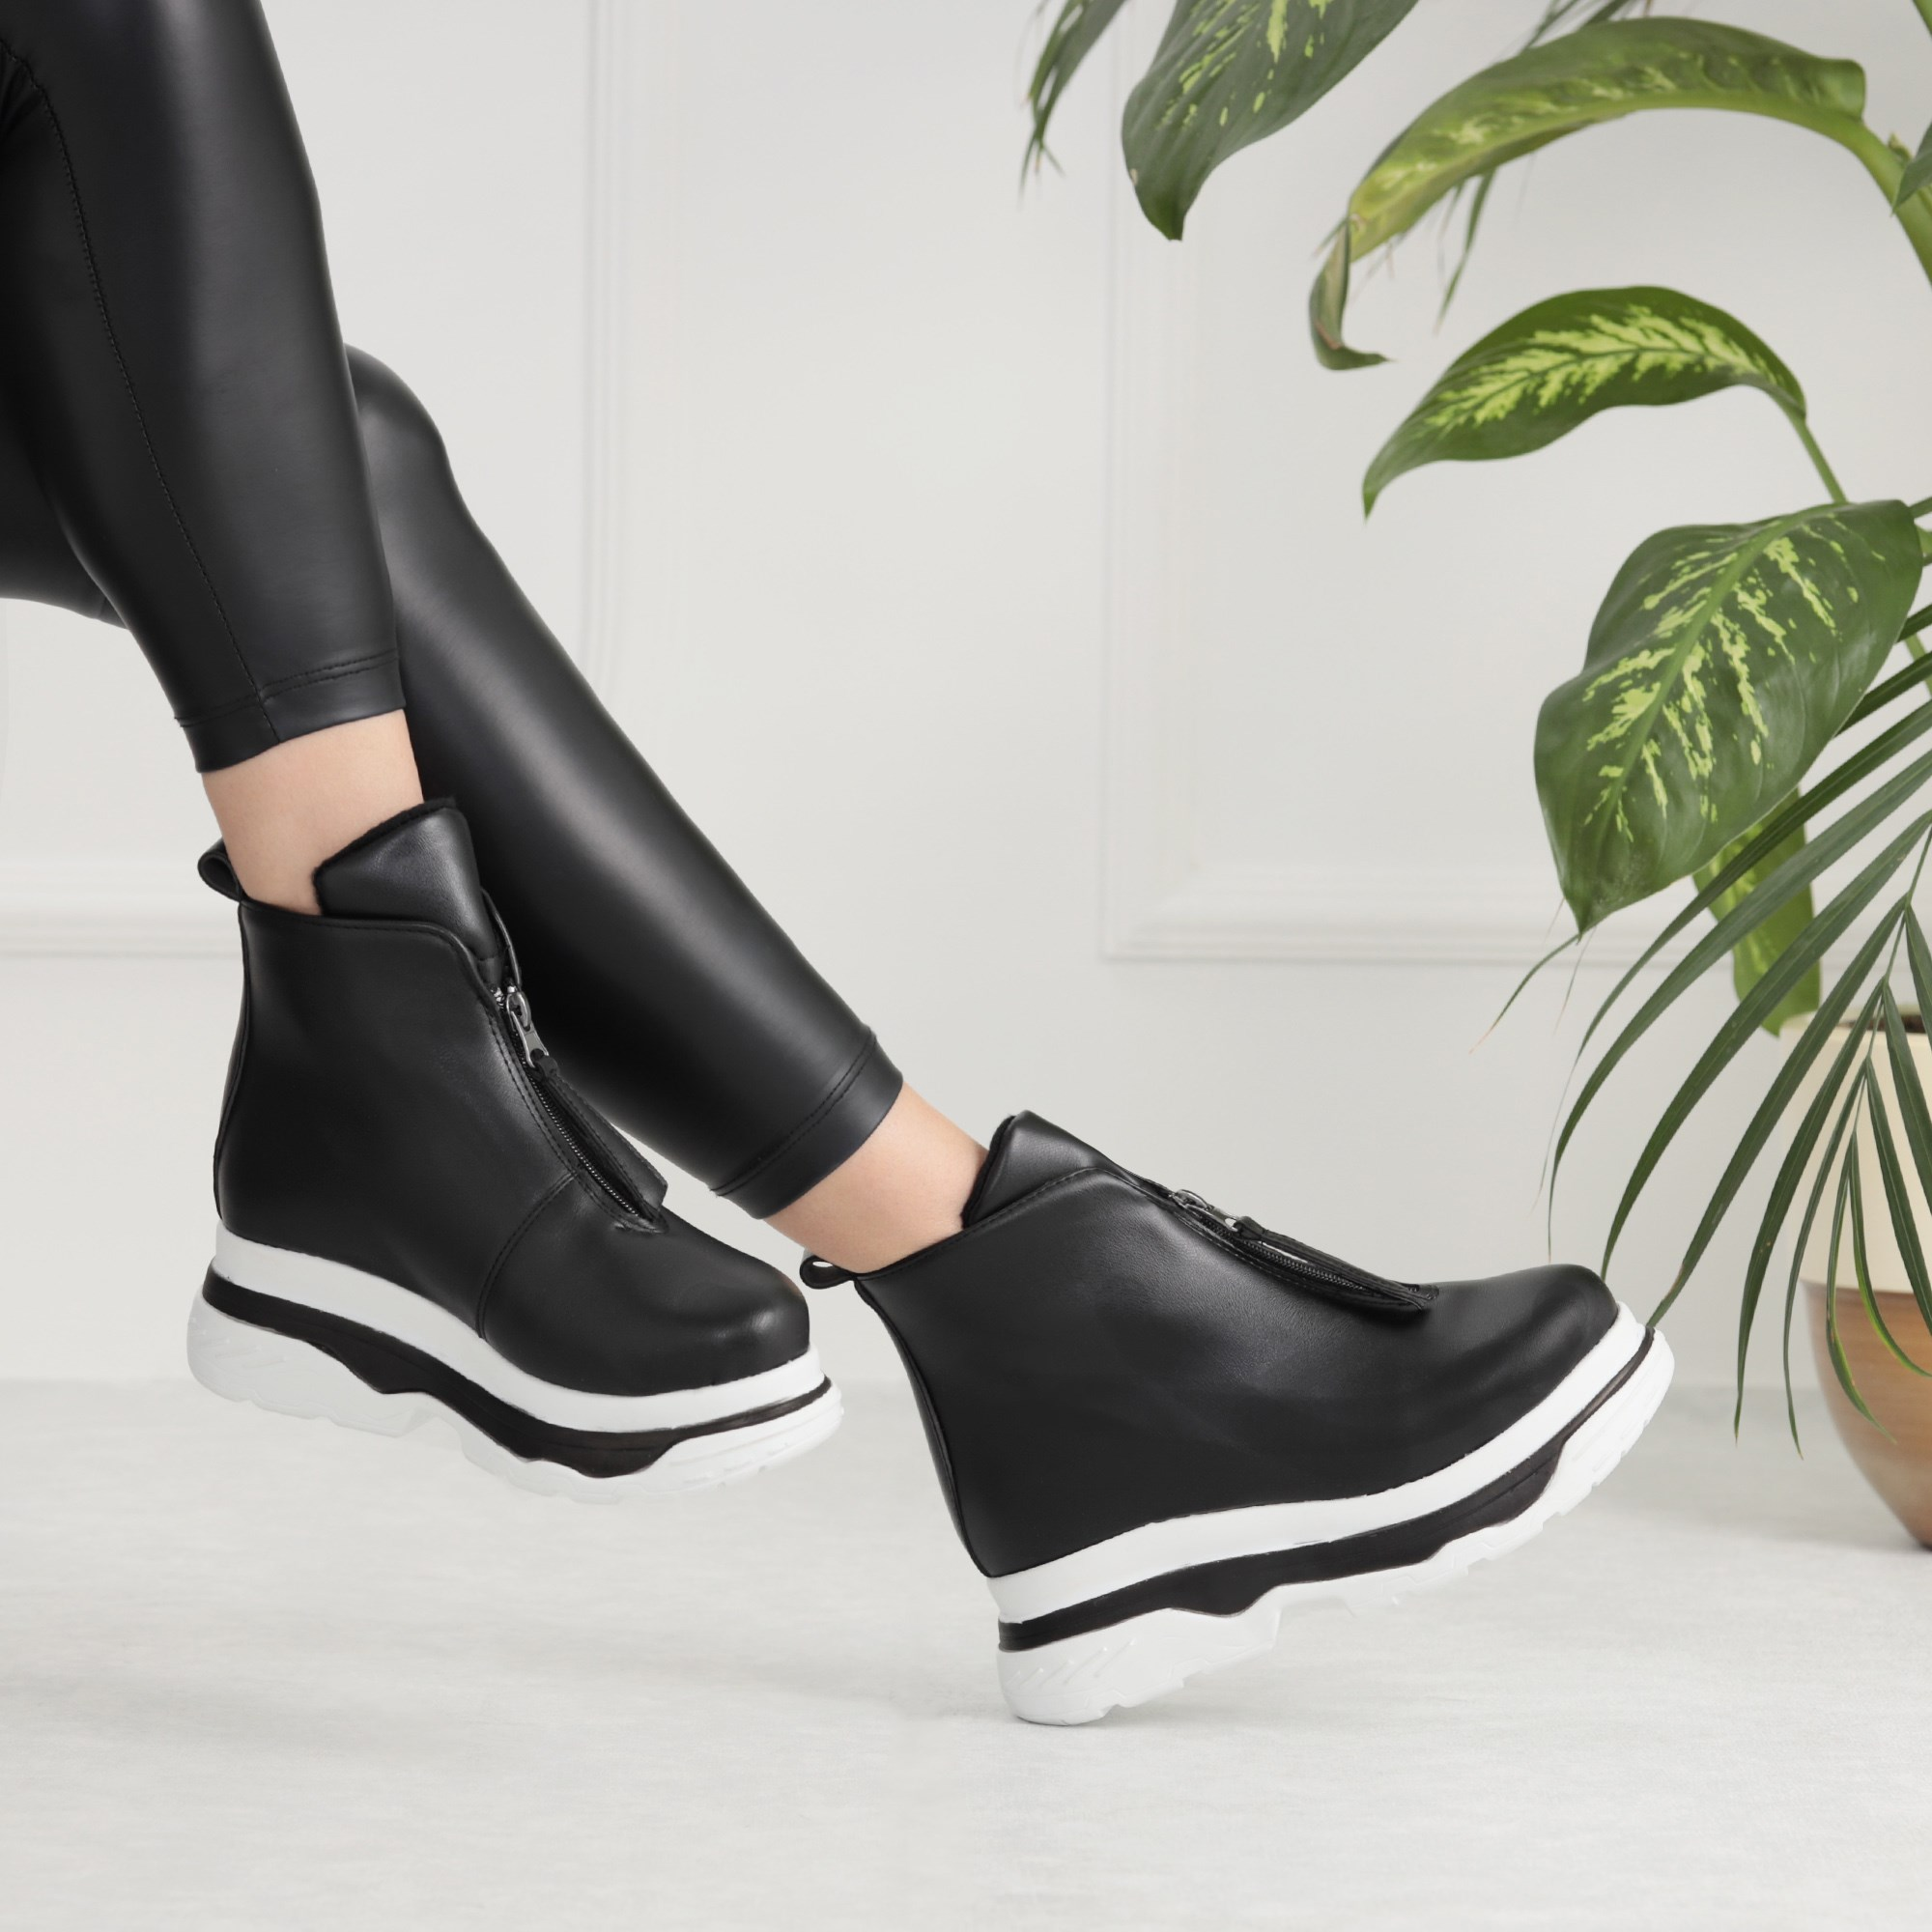 Enril Concealed Padding Thick Sole Black Sport Boots